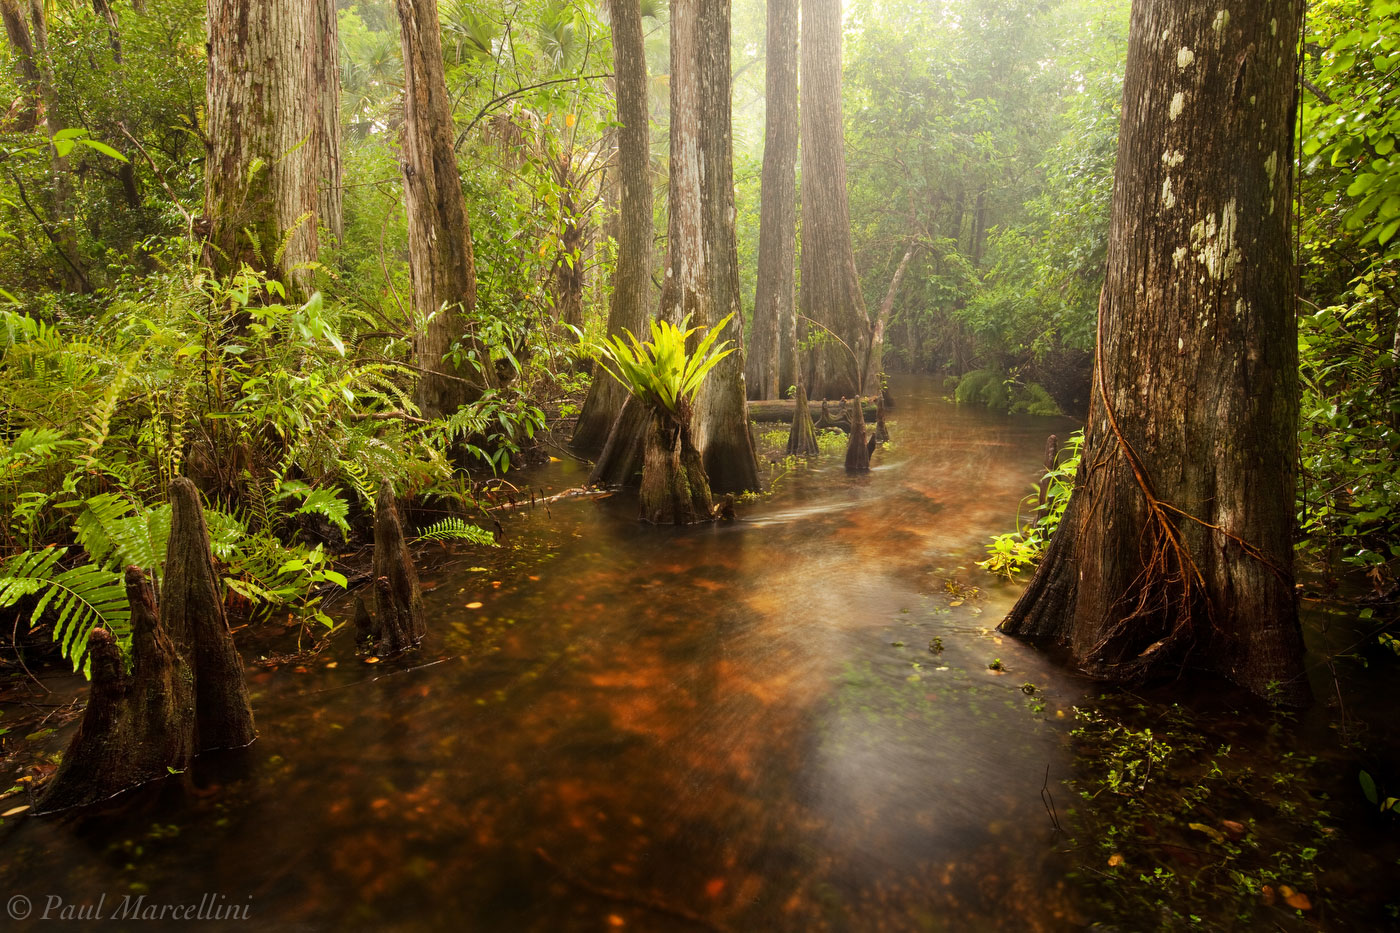 thunderstorm, big cypress, rain, misty, river, stream, Florida, nature, photography, photo